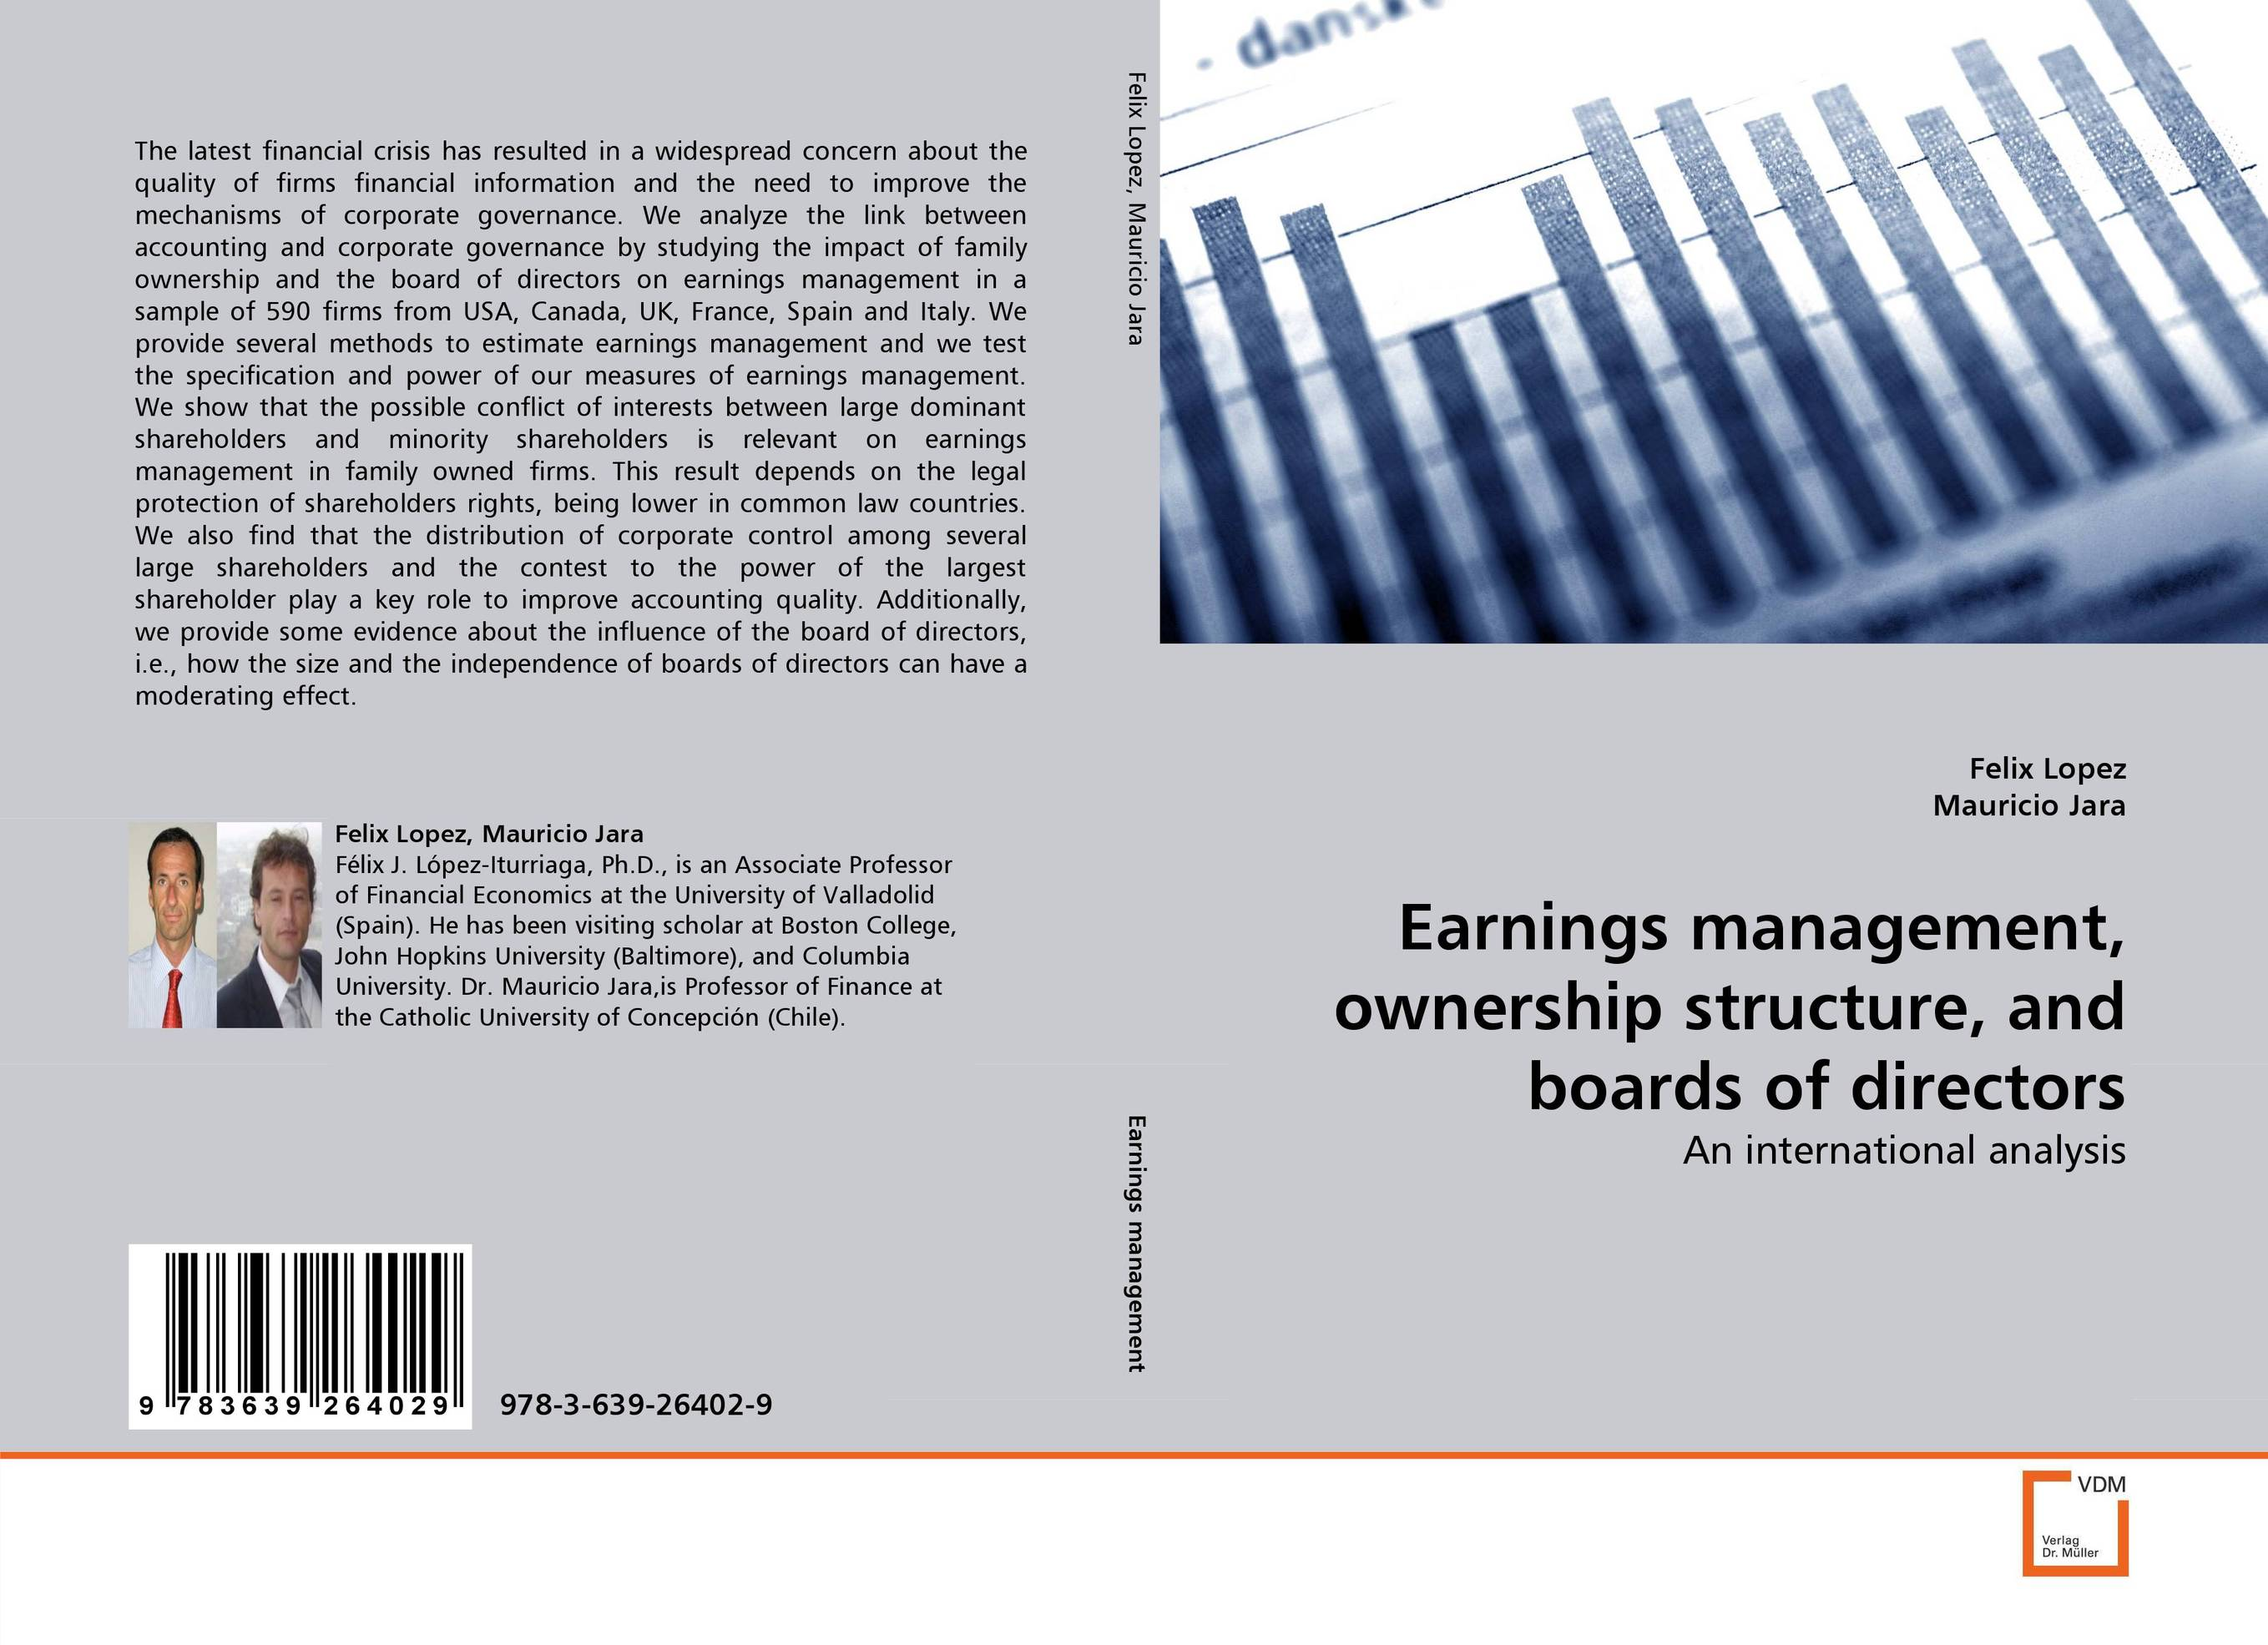 Earnings management, ownership structure, and boards of directors how might we test the effectiveness of design management methodology